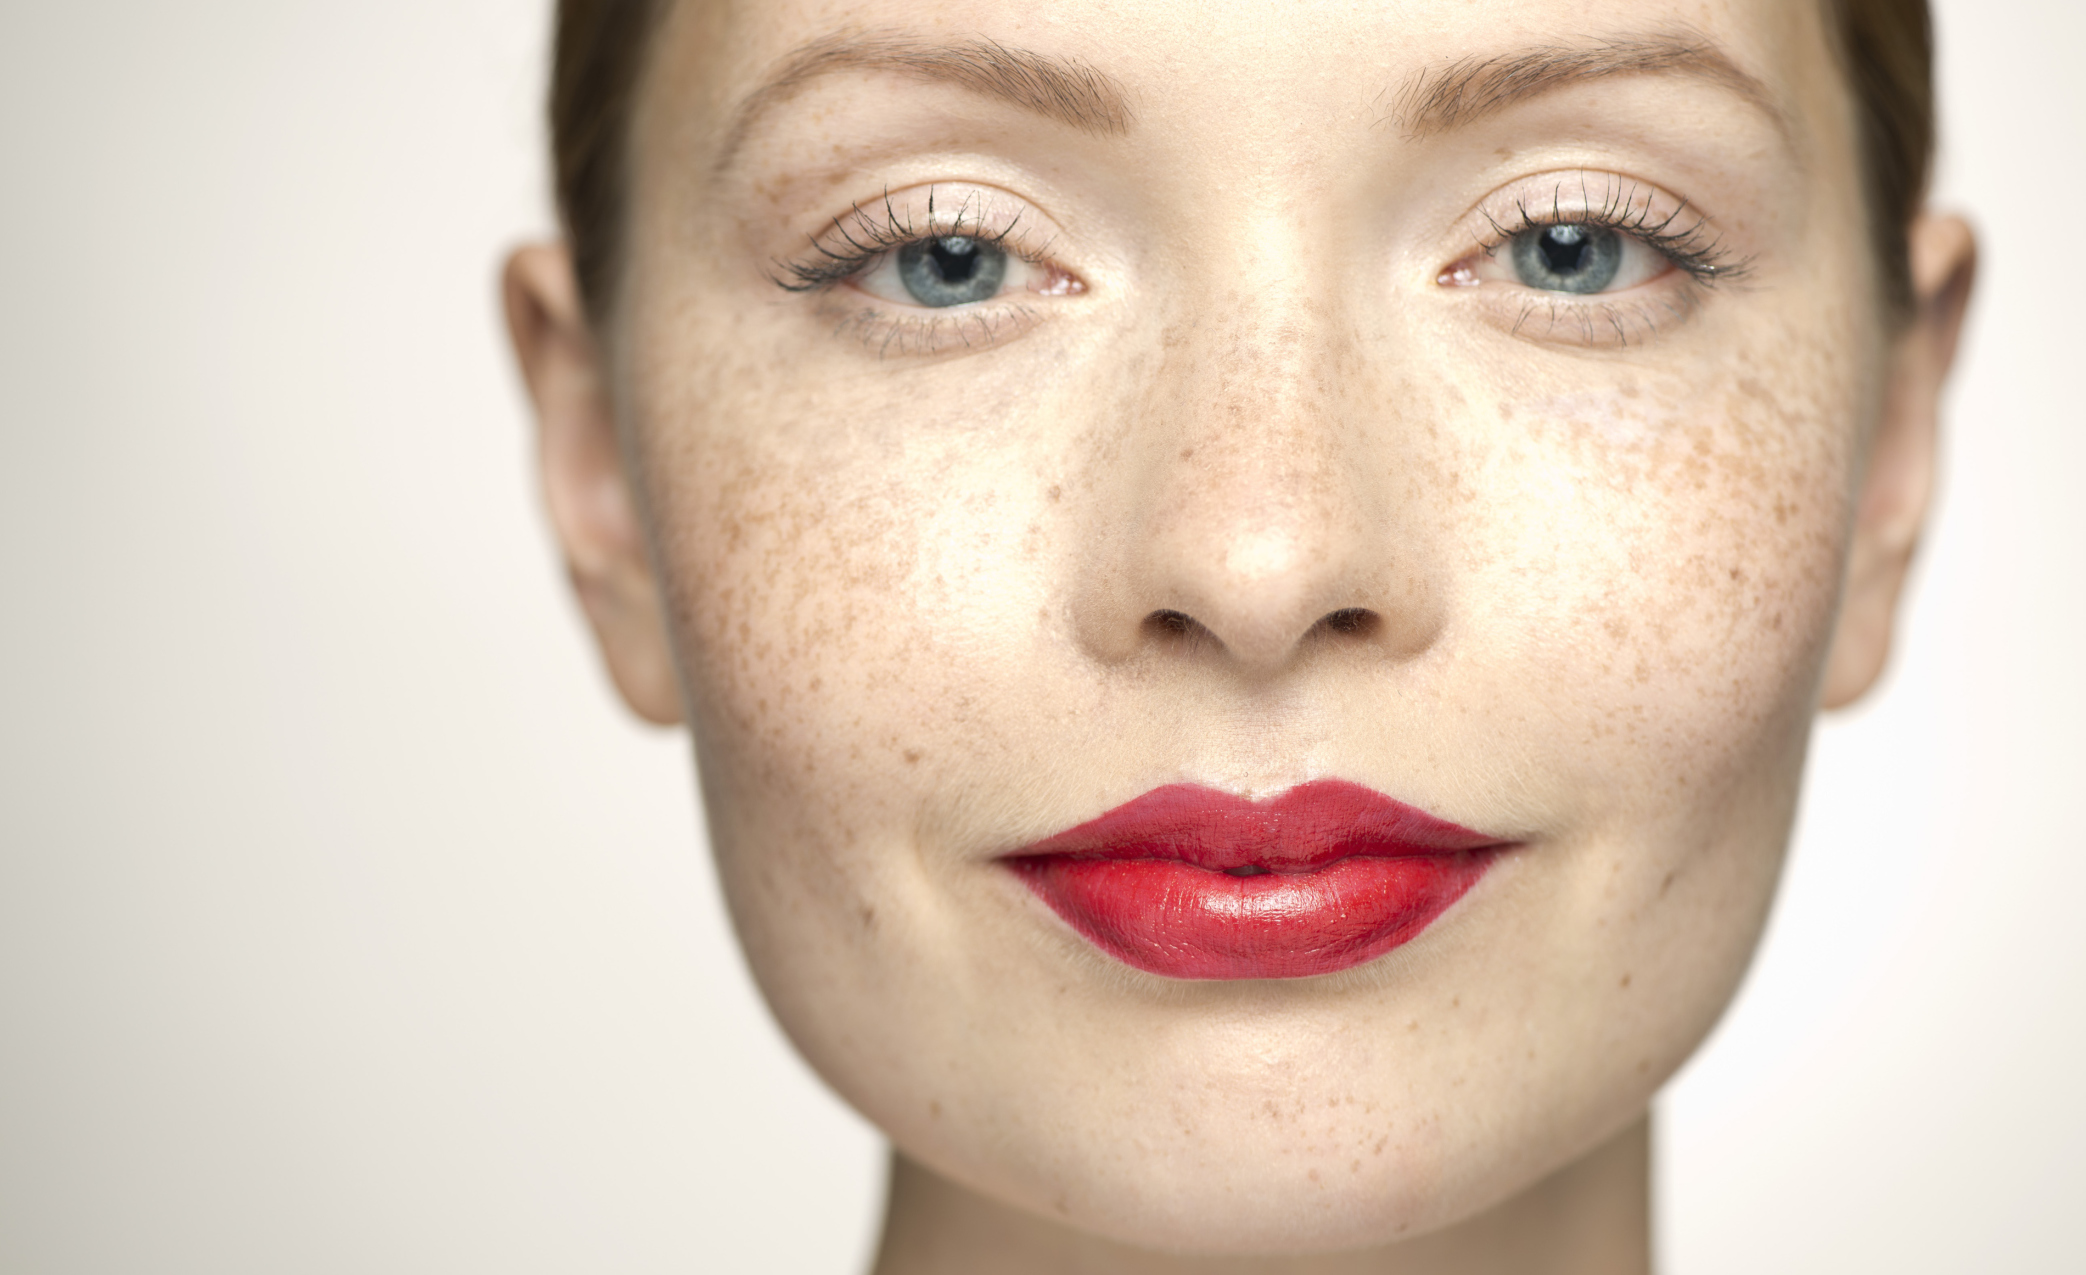 10 Essential makeup tips for pale skin – SheKnows